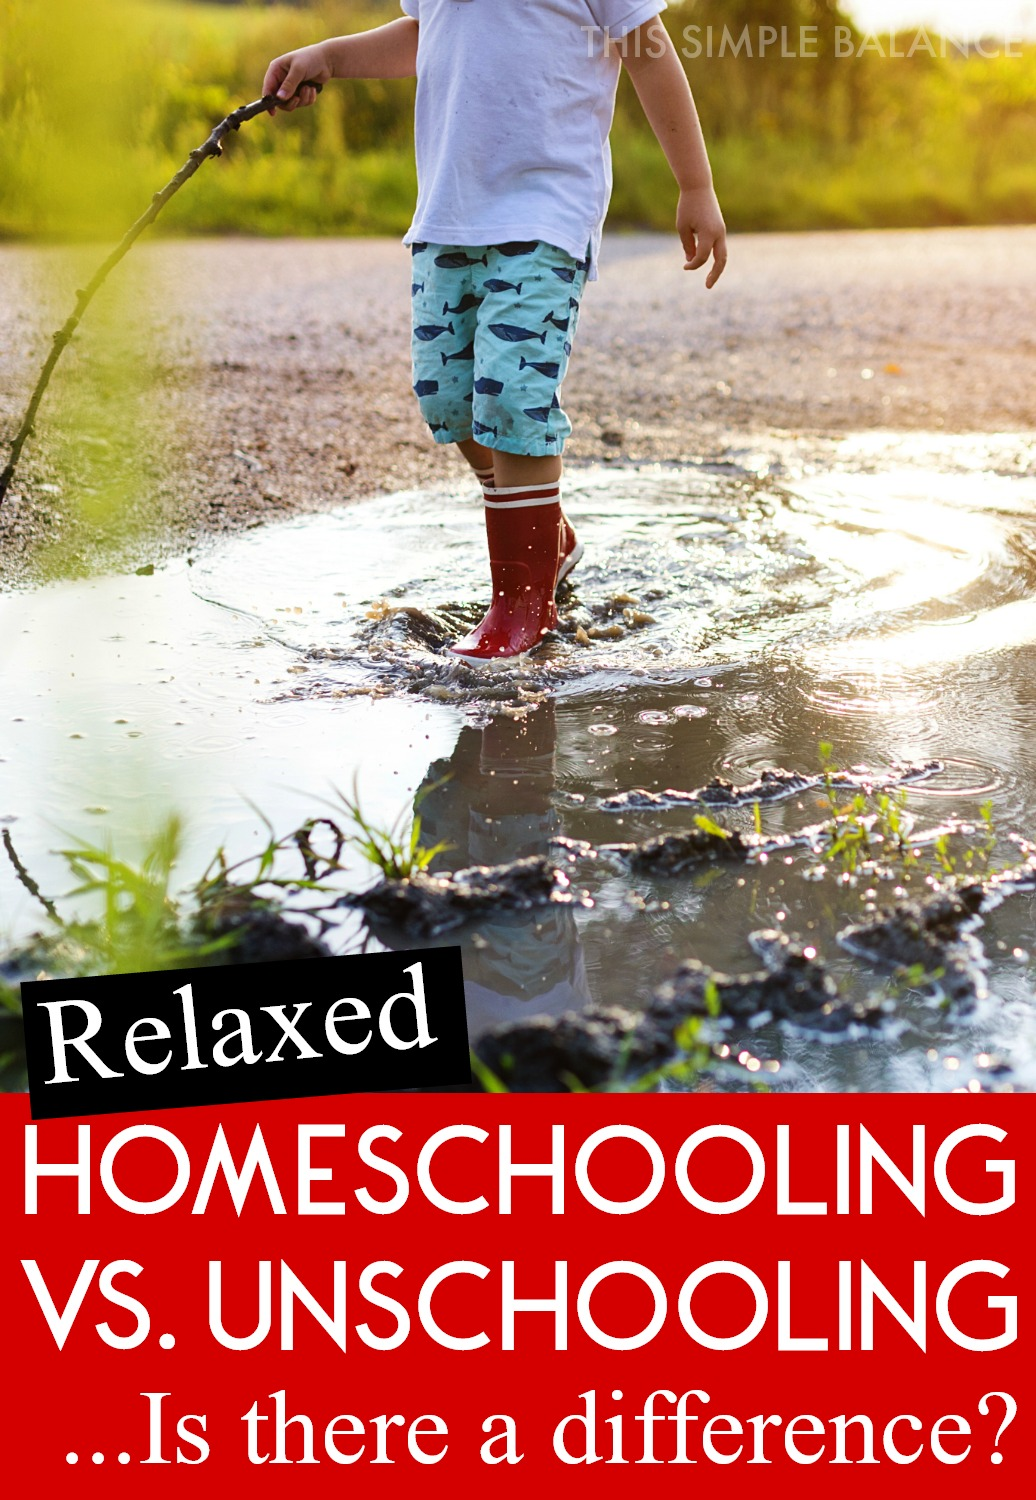 Relaxed Homeschooling and Unschooling are pretty similar, and some people consider them one and the same. But there is a very important difference. #relaxedhomeschooling